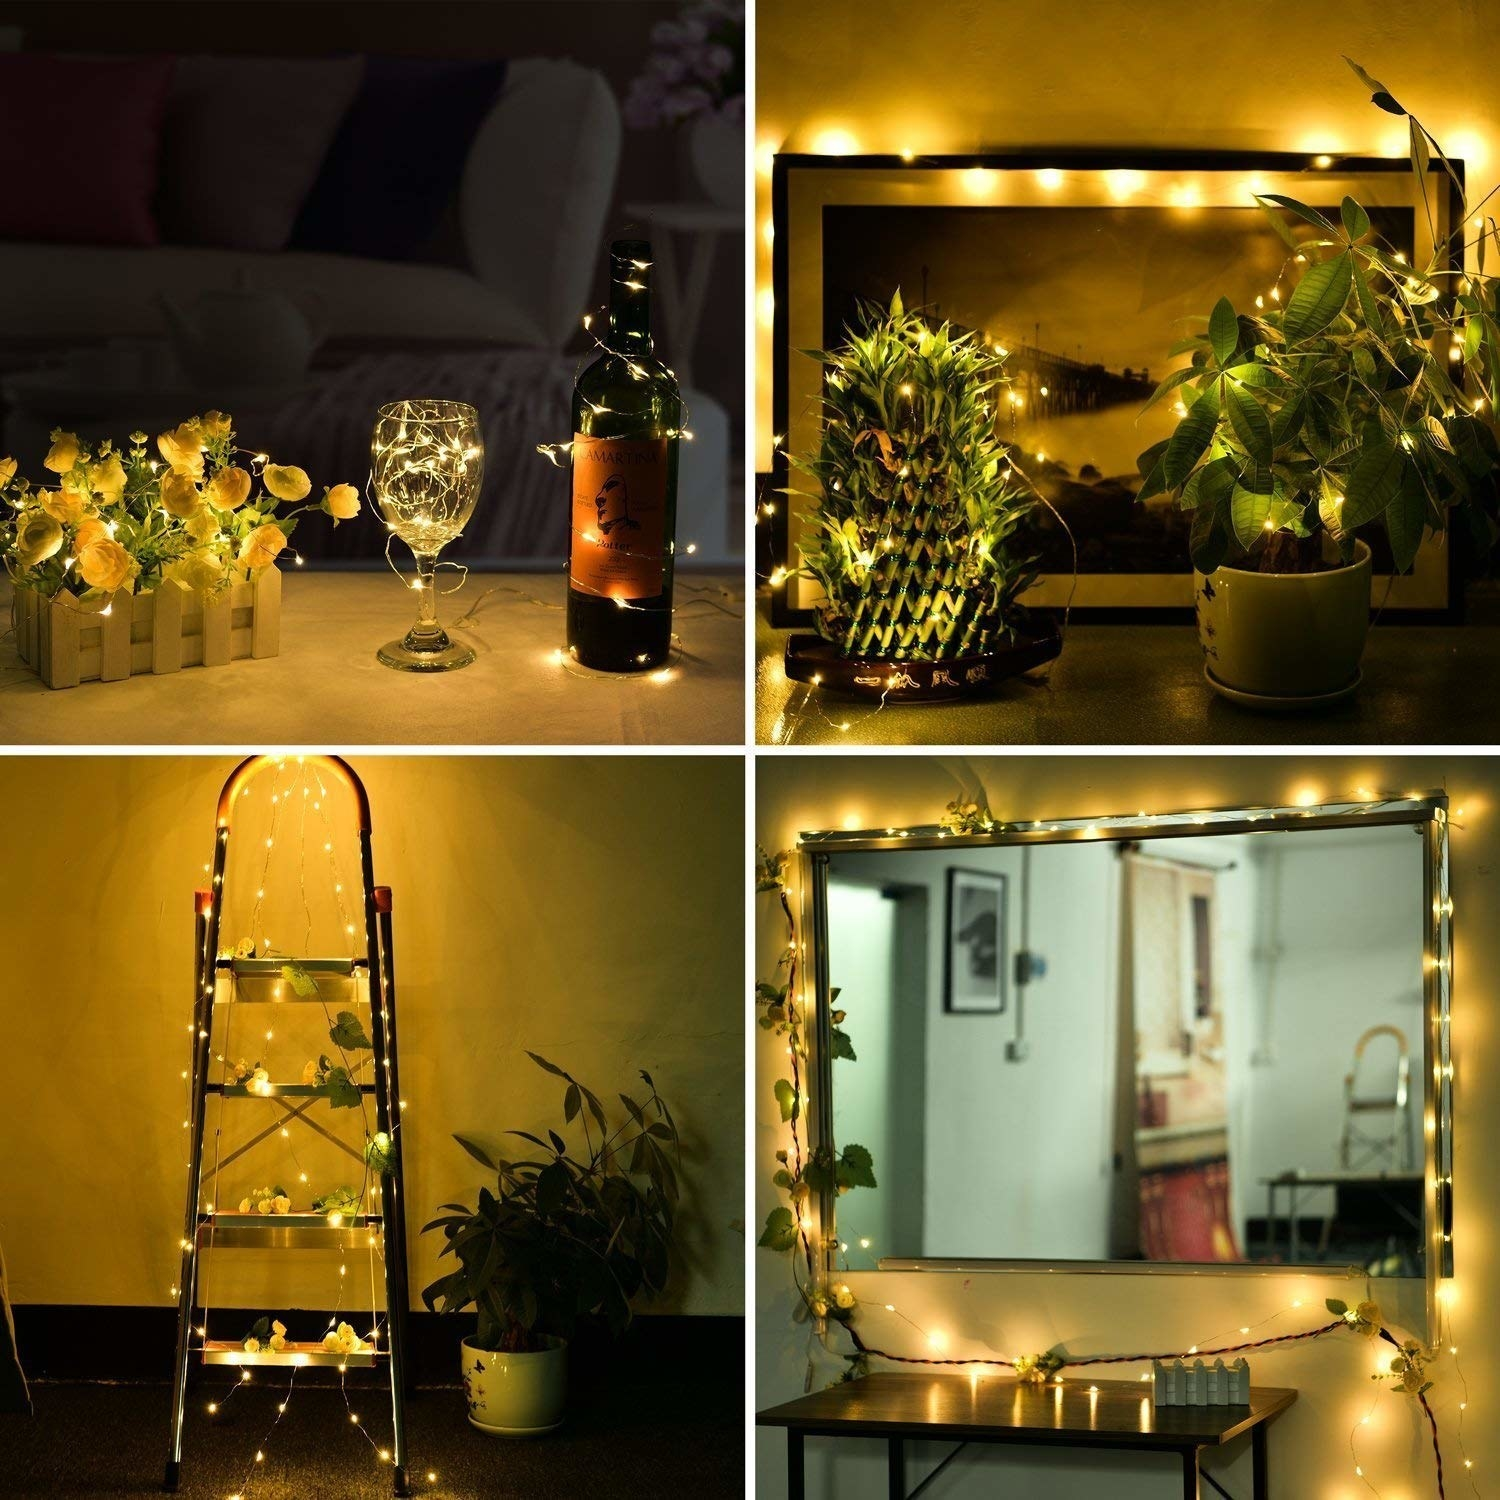 Fairy lights draped over a wine bottle and glass, plants, ladder, and mirror.